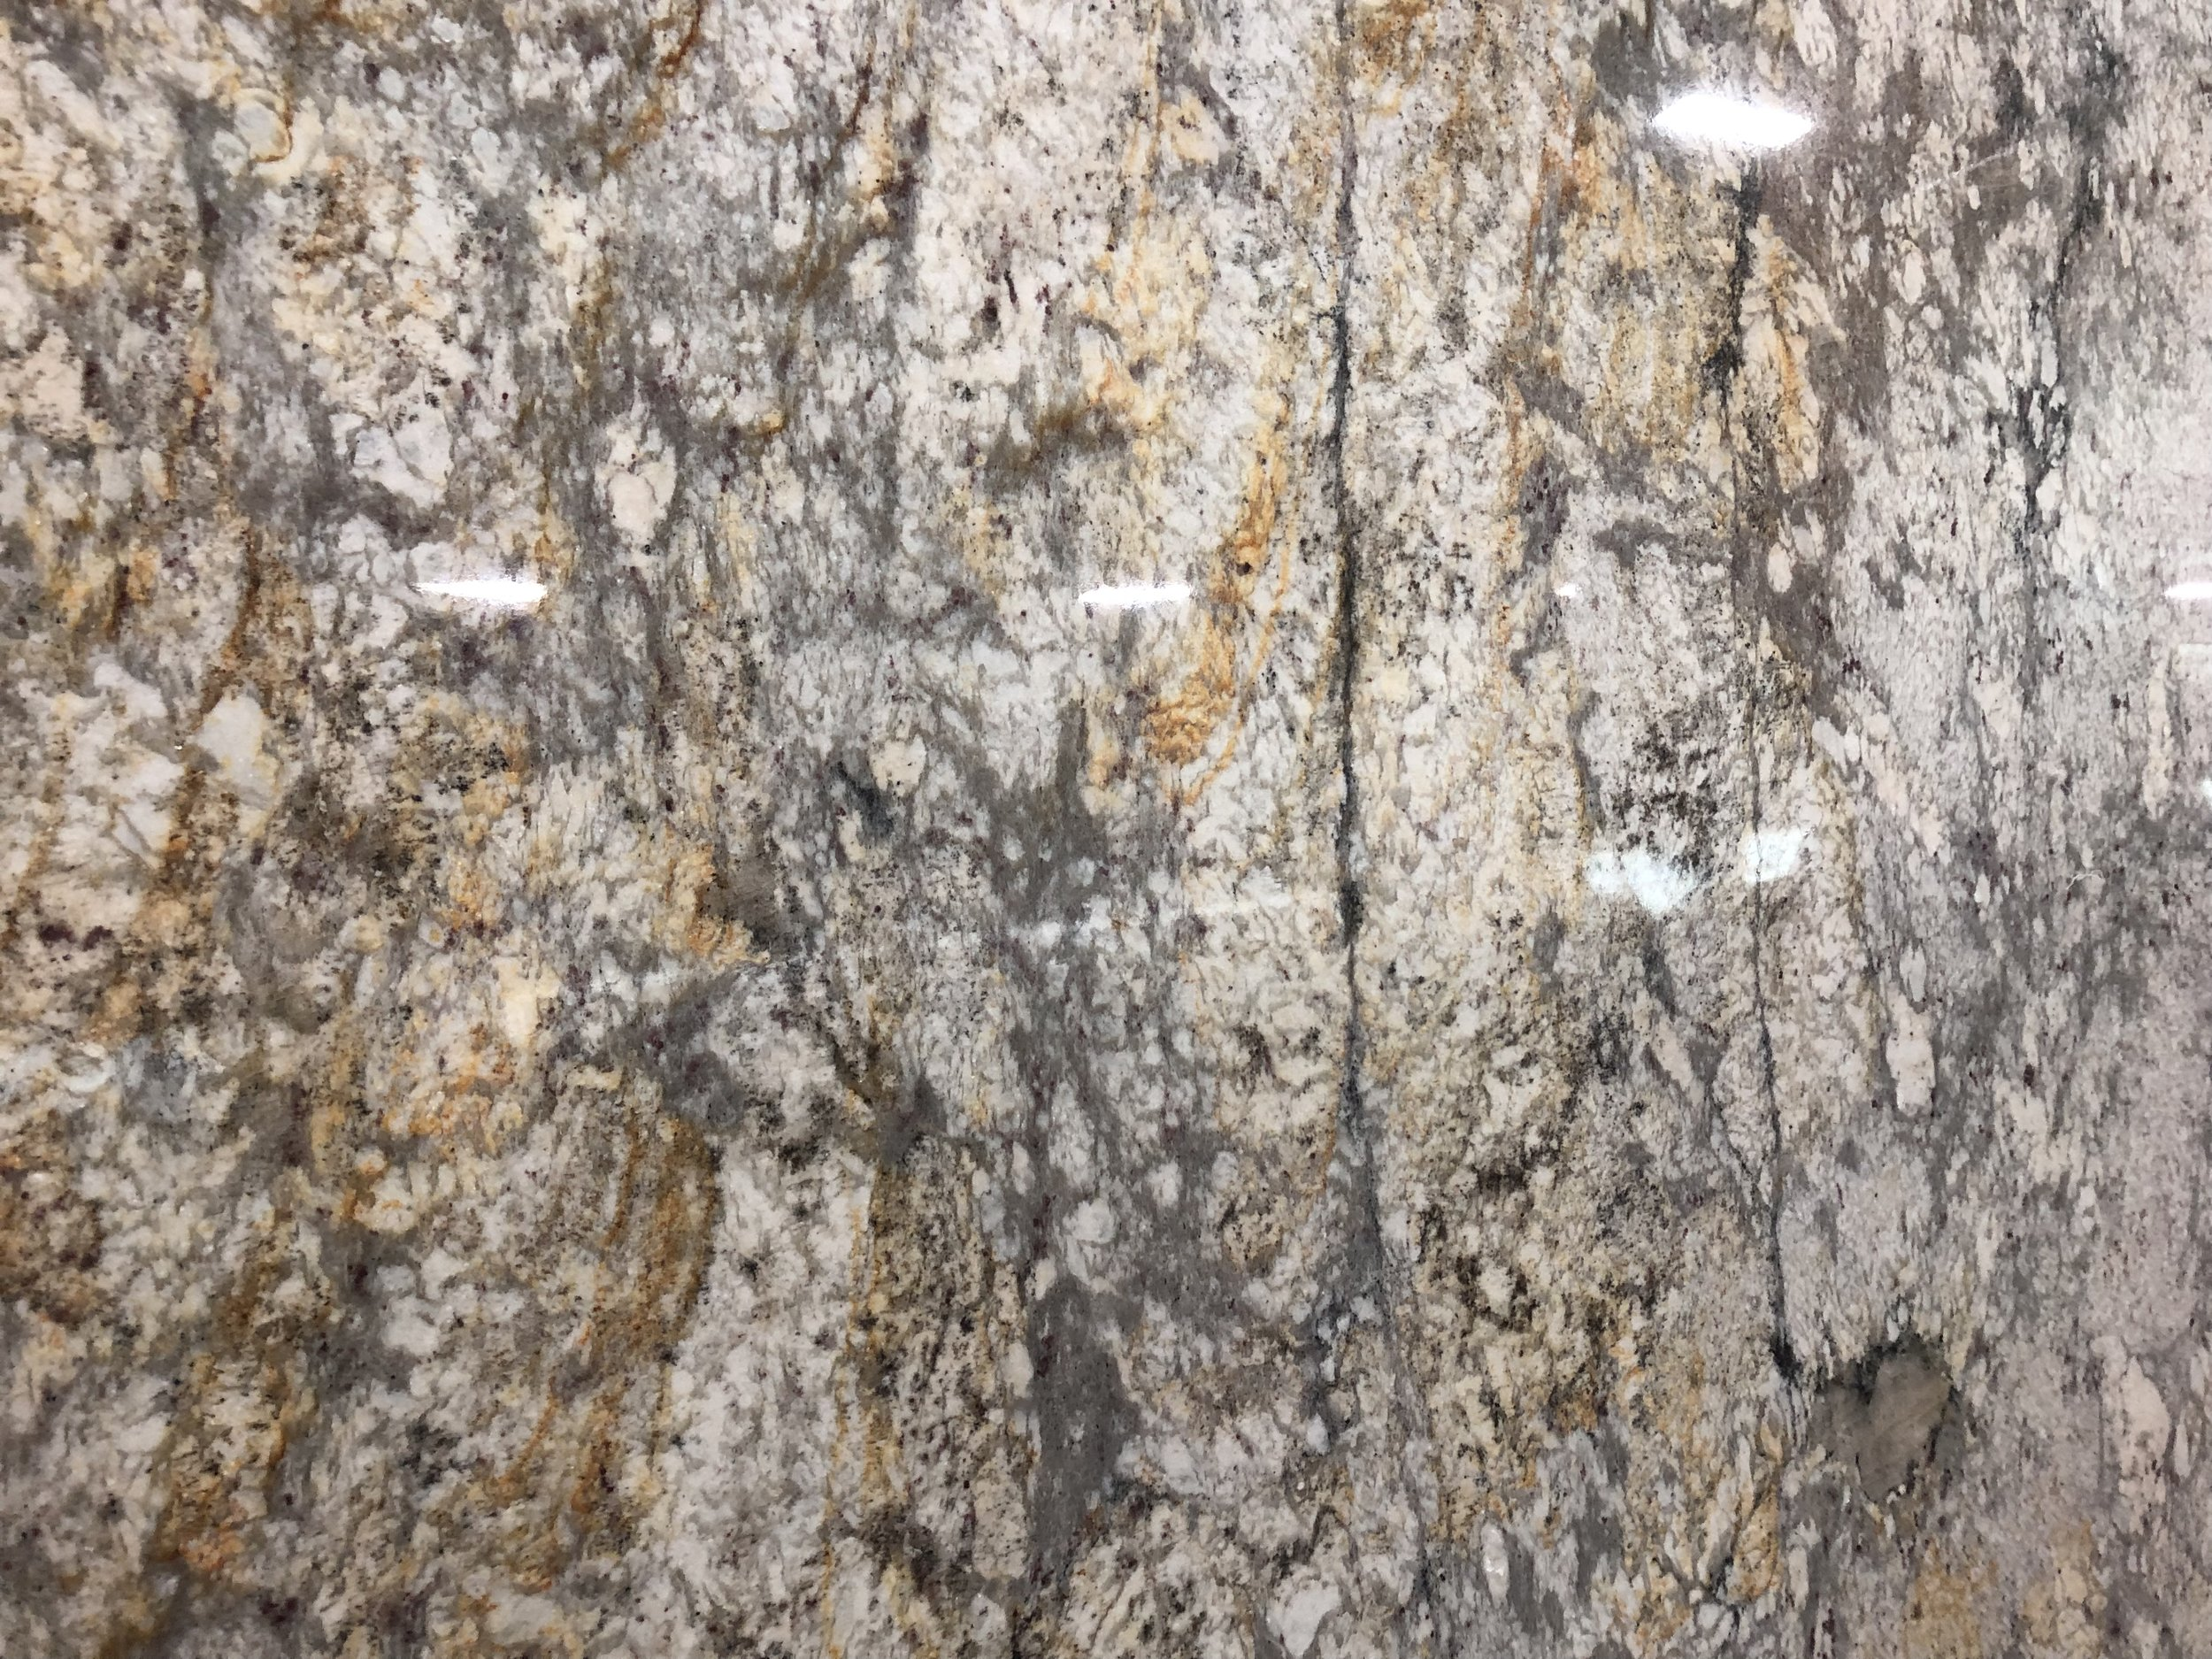 Sienna gray - Quarried: IndiaMaterial Type: GraniteDescription: grey and white base color with heavy deposits of yellows and dark grey veining.